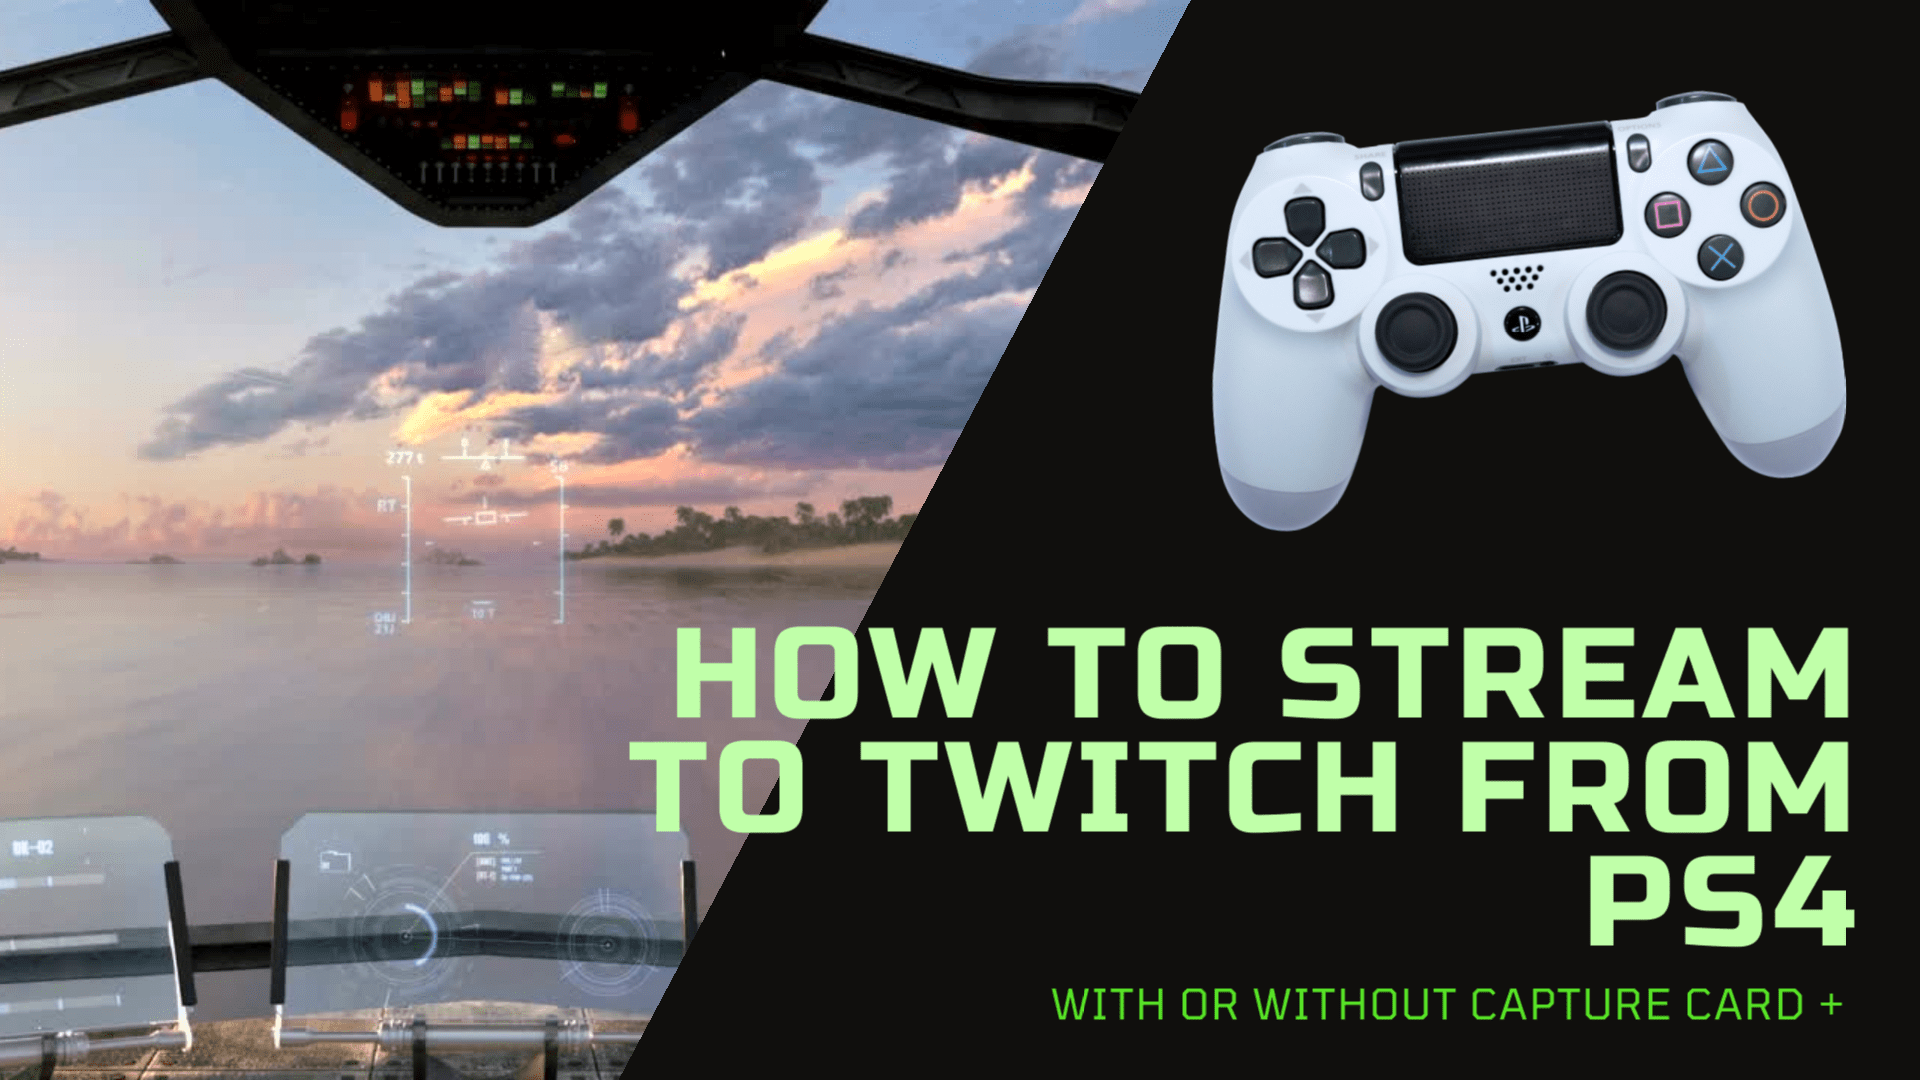 How to Stream to Twitch from PS4 in three different ways. With straight up ps4 to twitch, by using ps4 remote play which enables without a capture card streaming option and with the help of elgato streaming software.